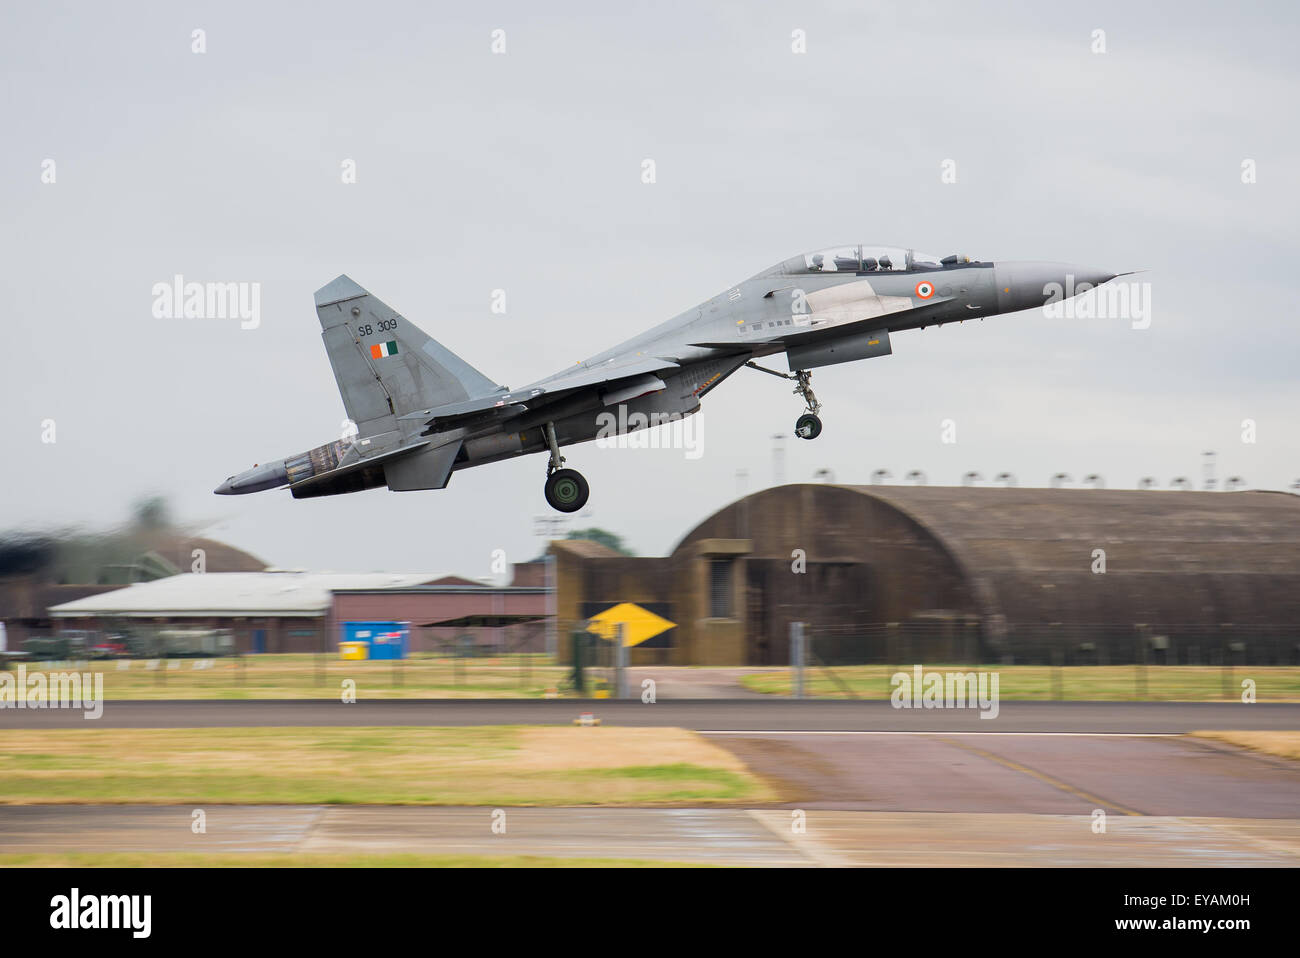 Indian Air Force Sukhoi Su-30MKI 'Flanker' participating in a bilateral air and ground exercise Indradhanush - Stock Image